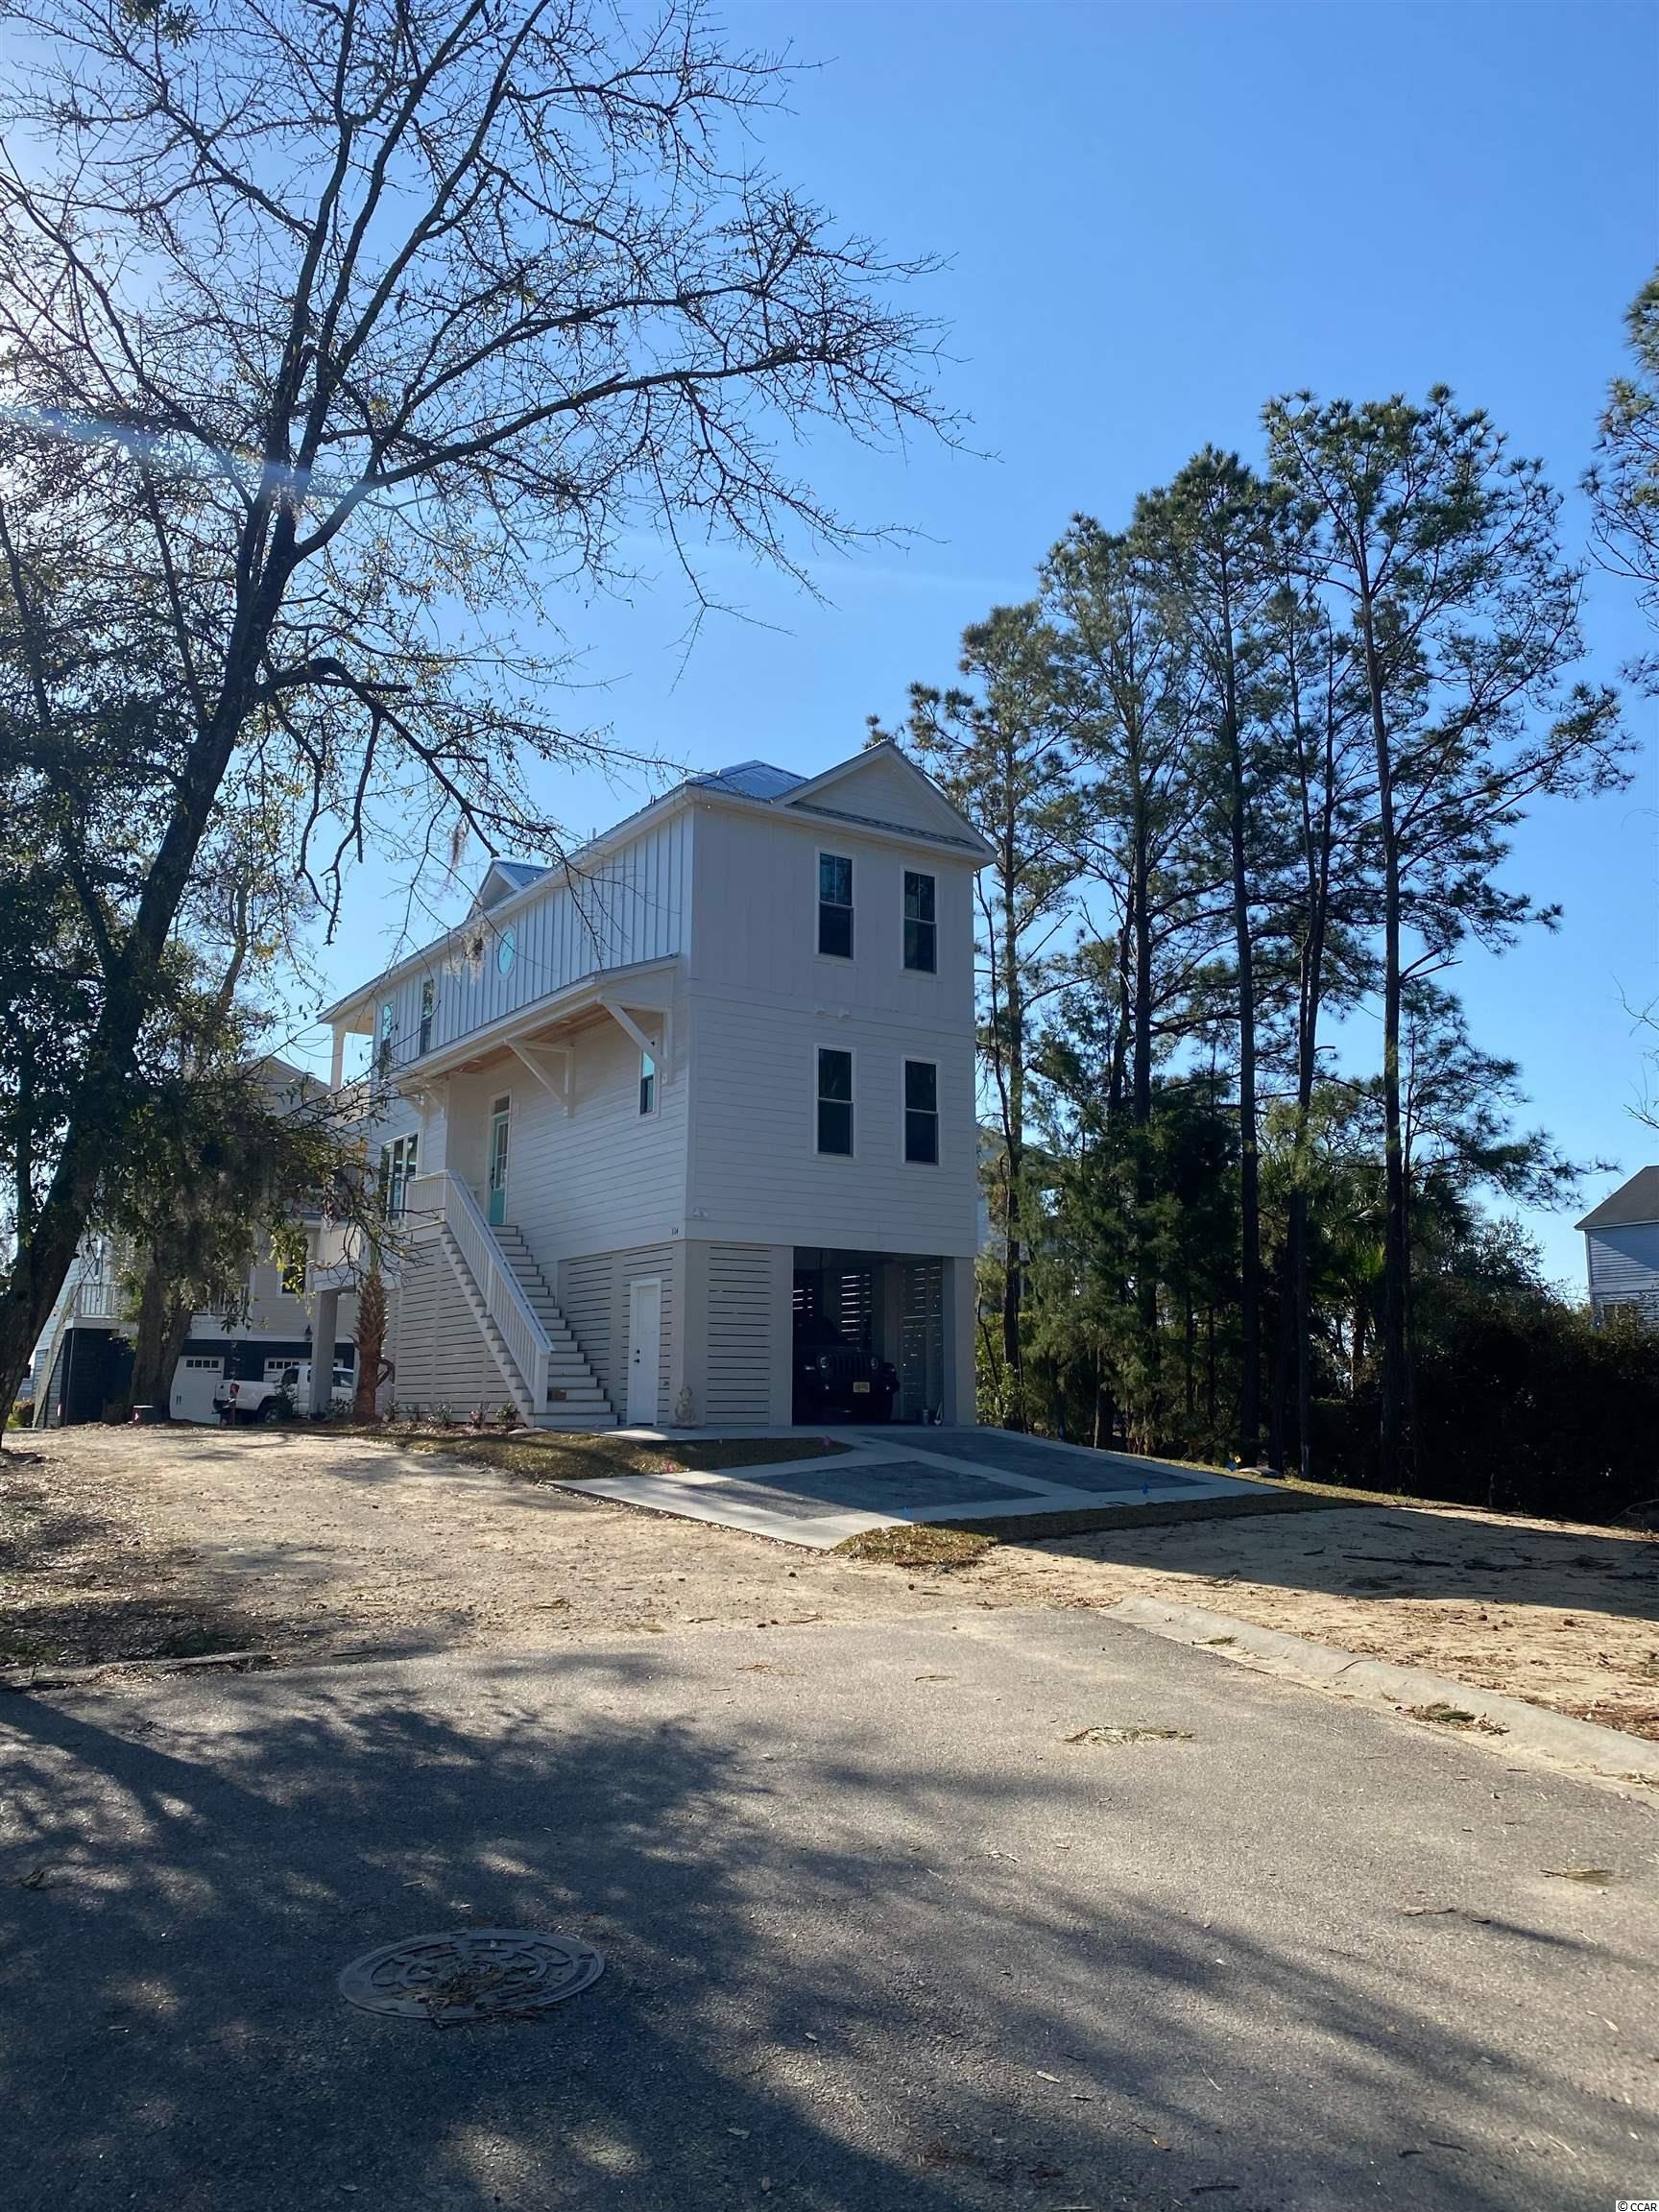 Wonderful home plan just breaking ground on Lot 36 in Marshland Park.  This home has everything you are looking for.  Pictures are of a very similar model.  This home will finish up late summer.  Hardie siding, metal roof, custom cabinets, LVP flooring, solid surface counters, etc.  Trash pickup and lawn maintenance included in the HOA.  Call today!